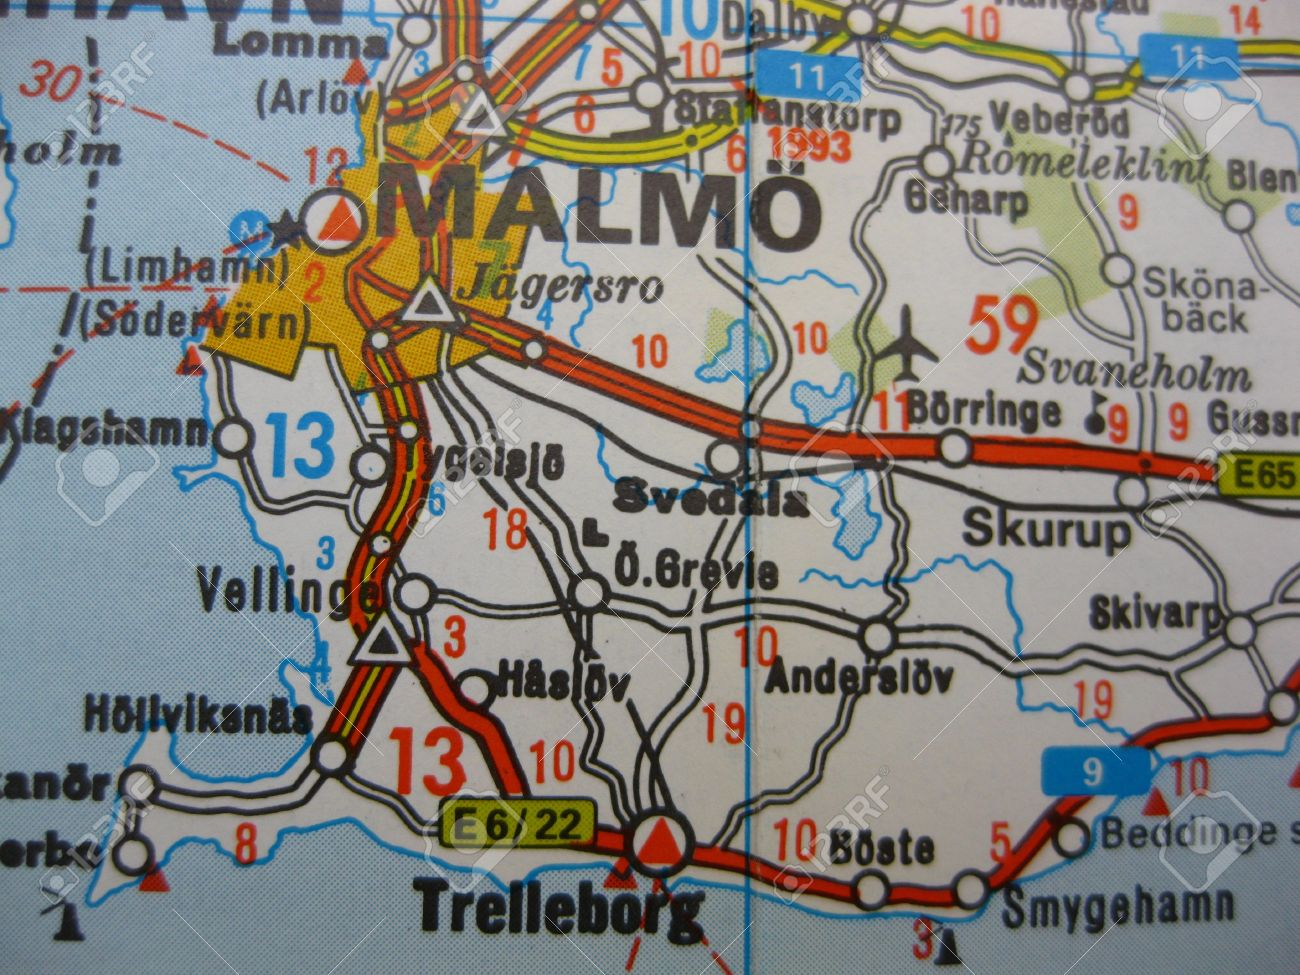 Europe in seven days: map of Malmo, Sweden on sweden country map, lund sweden map, usa map, smogen sweden map, vaxjo sweden map, ornskoldsvik sweden map, vastervik sweden map, southern sweden map, oslo sweden map, jonkoping sweden map, varmland sweden map, ystad sweden map, almhult sweden map, kristianstad sweden map, uppsala sweden map, jarfalla sweden map, linkoping sweden map, stockholm sweden map, solvesborg sweden map, norway sweden map,